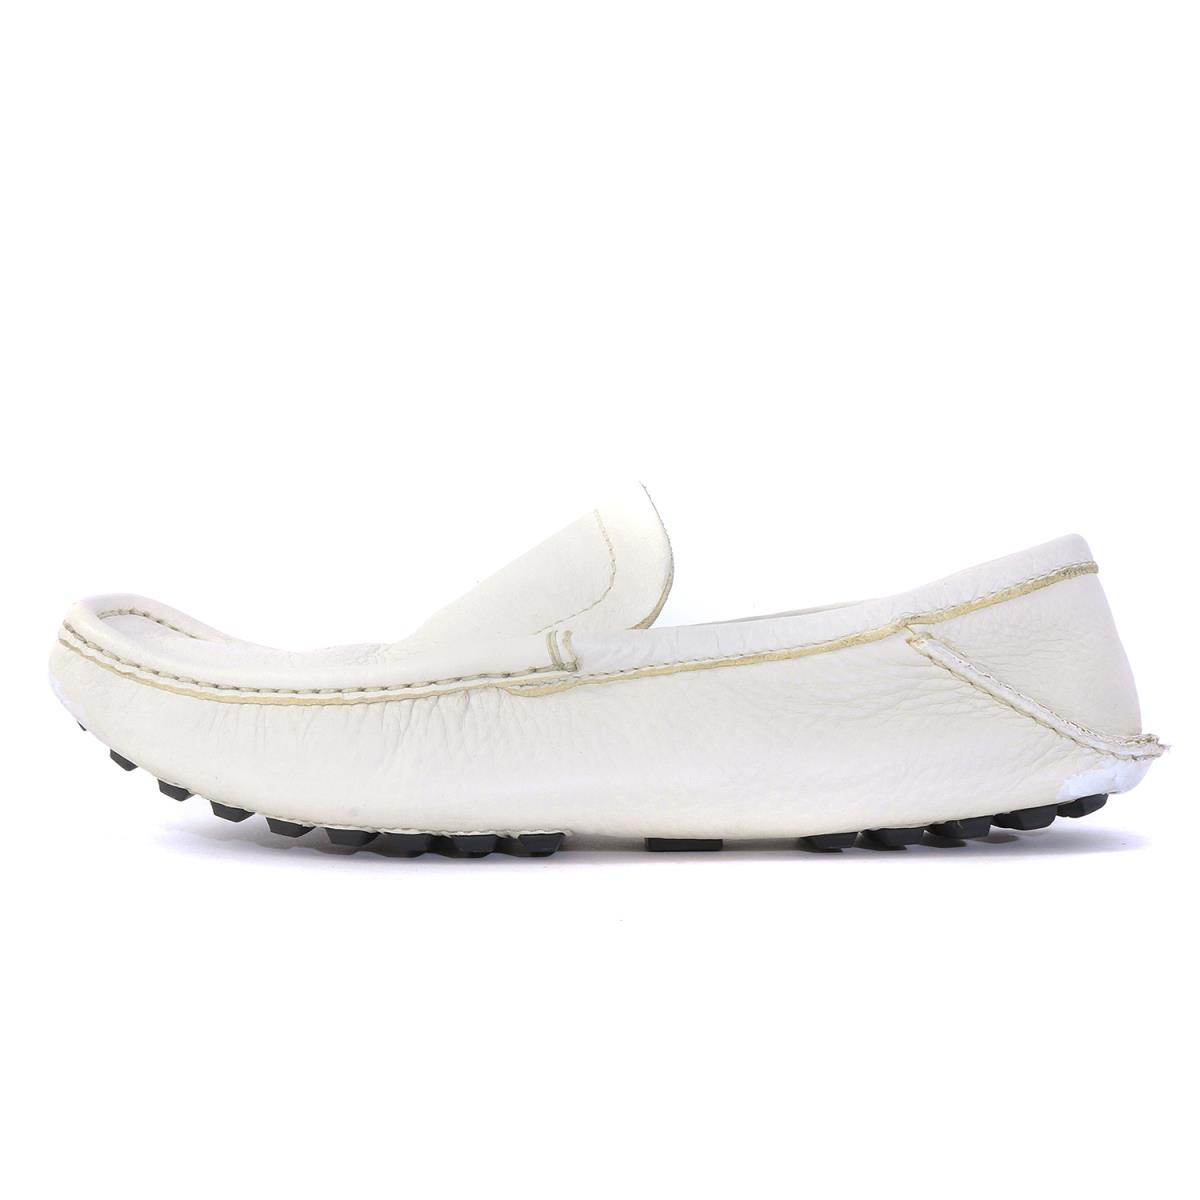 8203e530d20 BEEGLE by Boo-Bee  GUCCI (Gucci) leather driving shoes white 39 ...